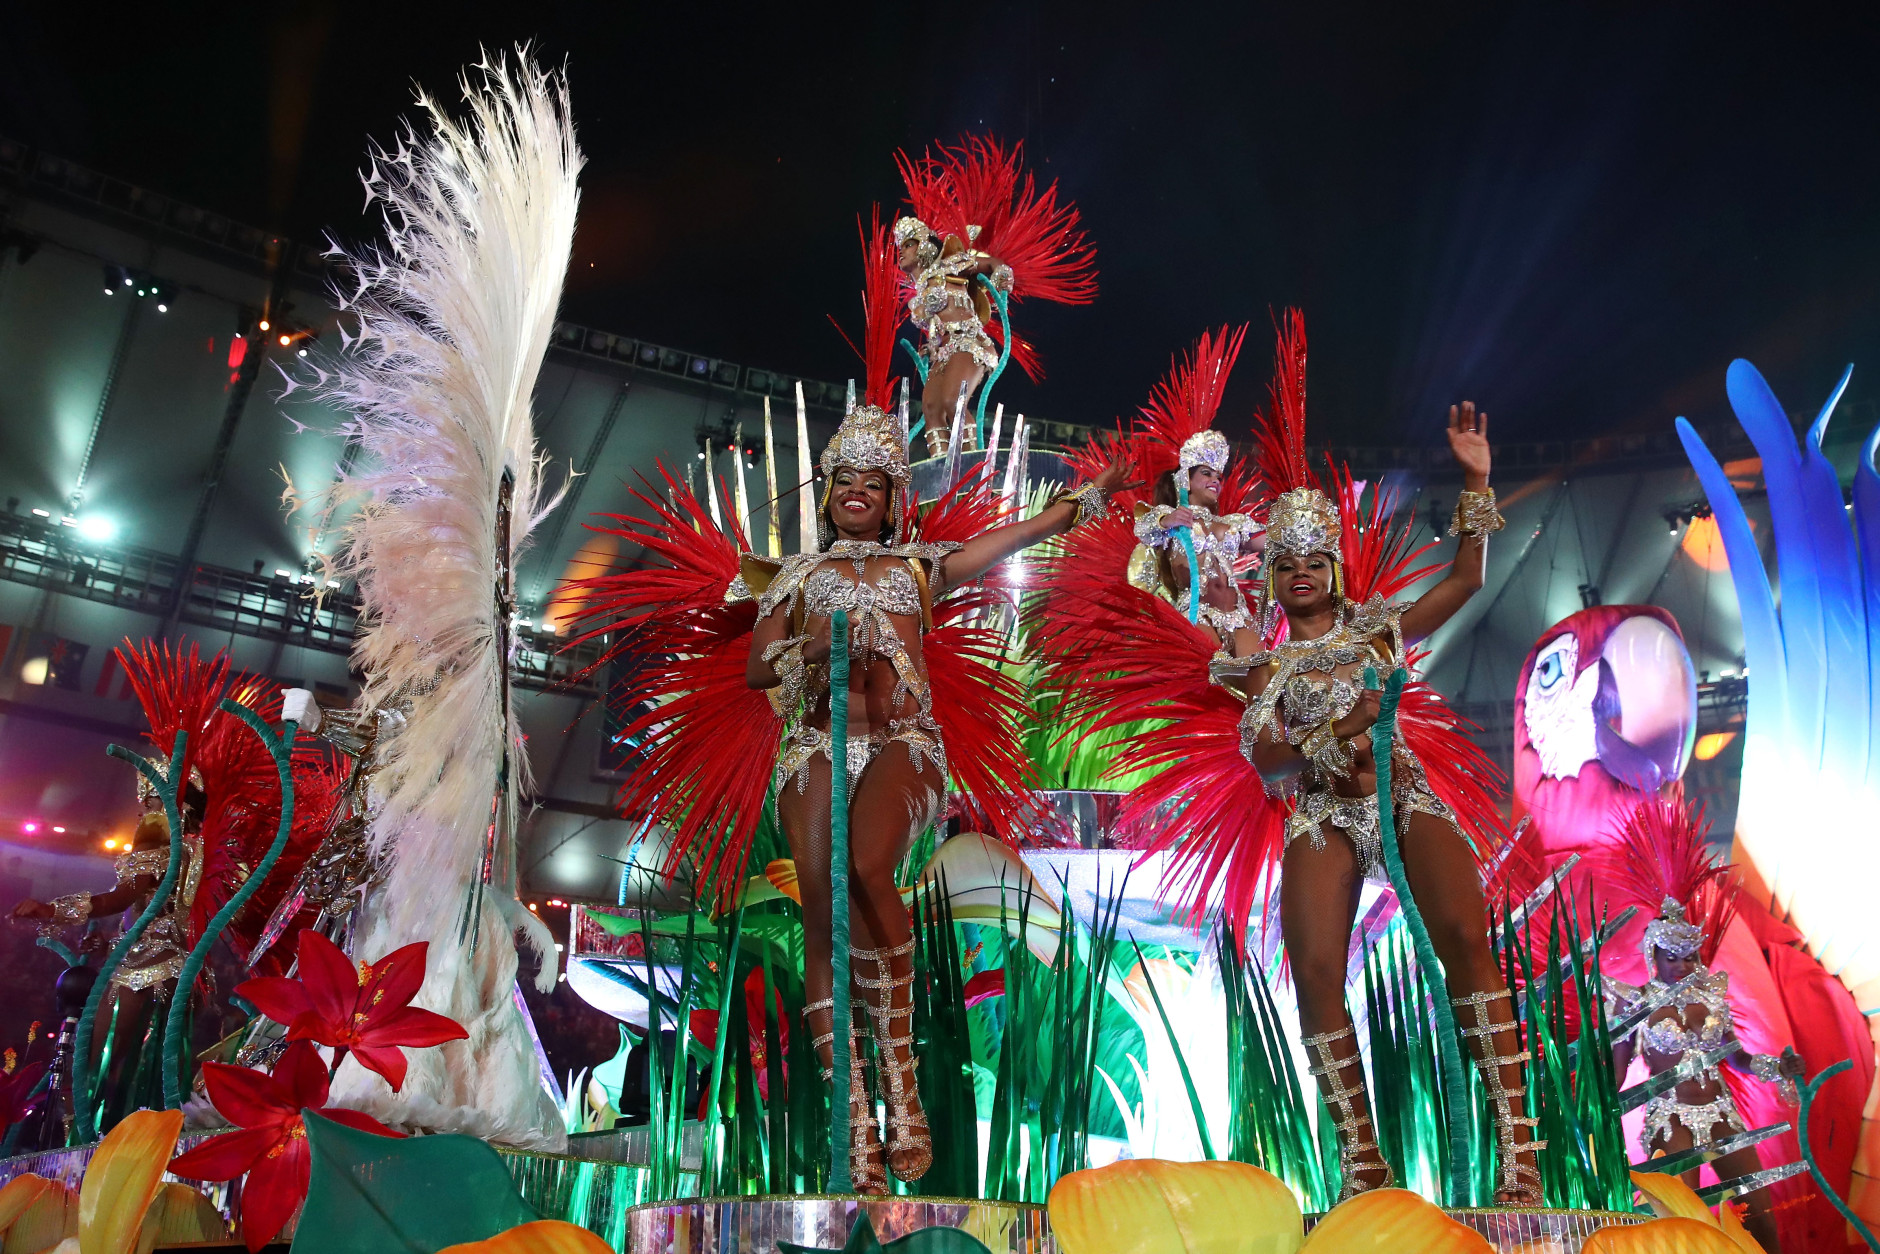 RIO DE JANEIRO, BRAZIL - AUGUST 21:  Carnival dancers perform during the Closing Ceremony on Day 16 of the Rio 2016 Olympic Games at Maracana Stadium on August 21, 2016 in Rio de Janeiro, Brazil.  (Photo by Cameron Spencer/Getty Images)